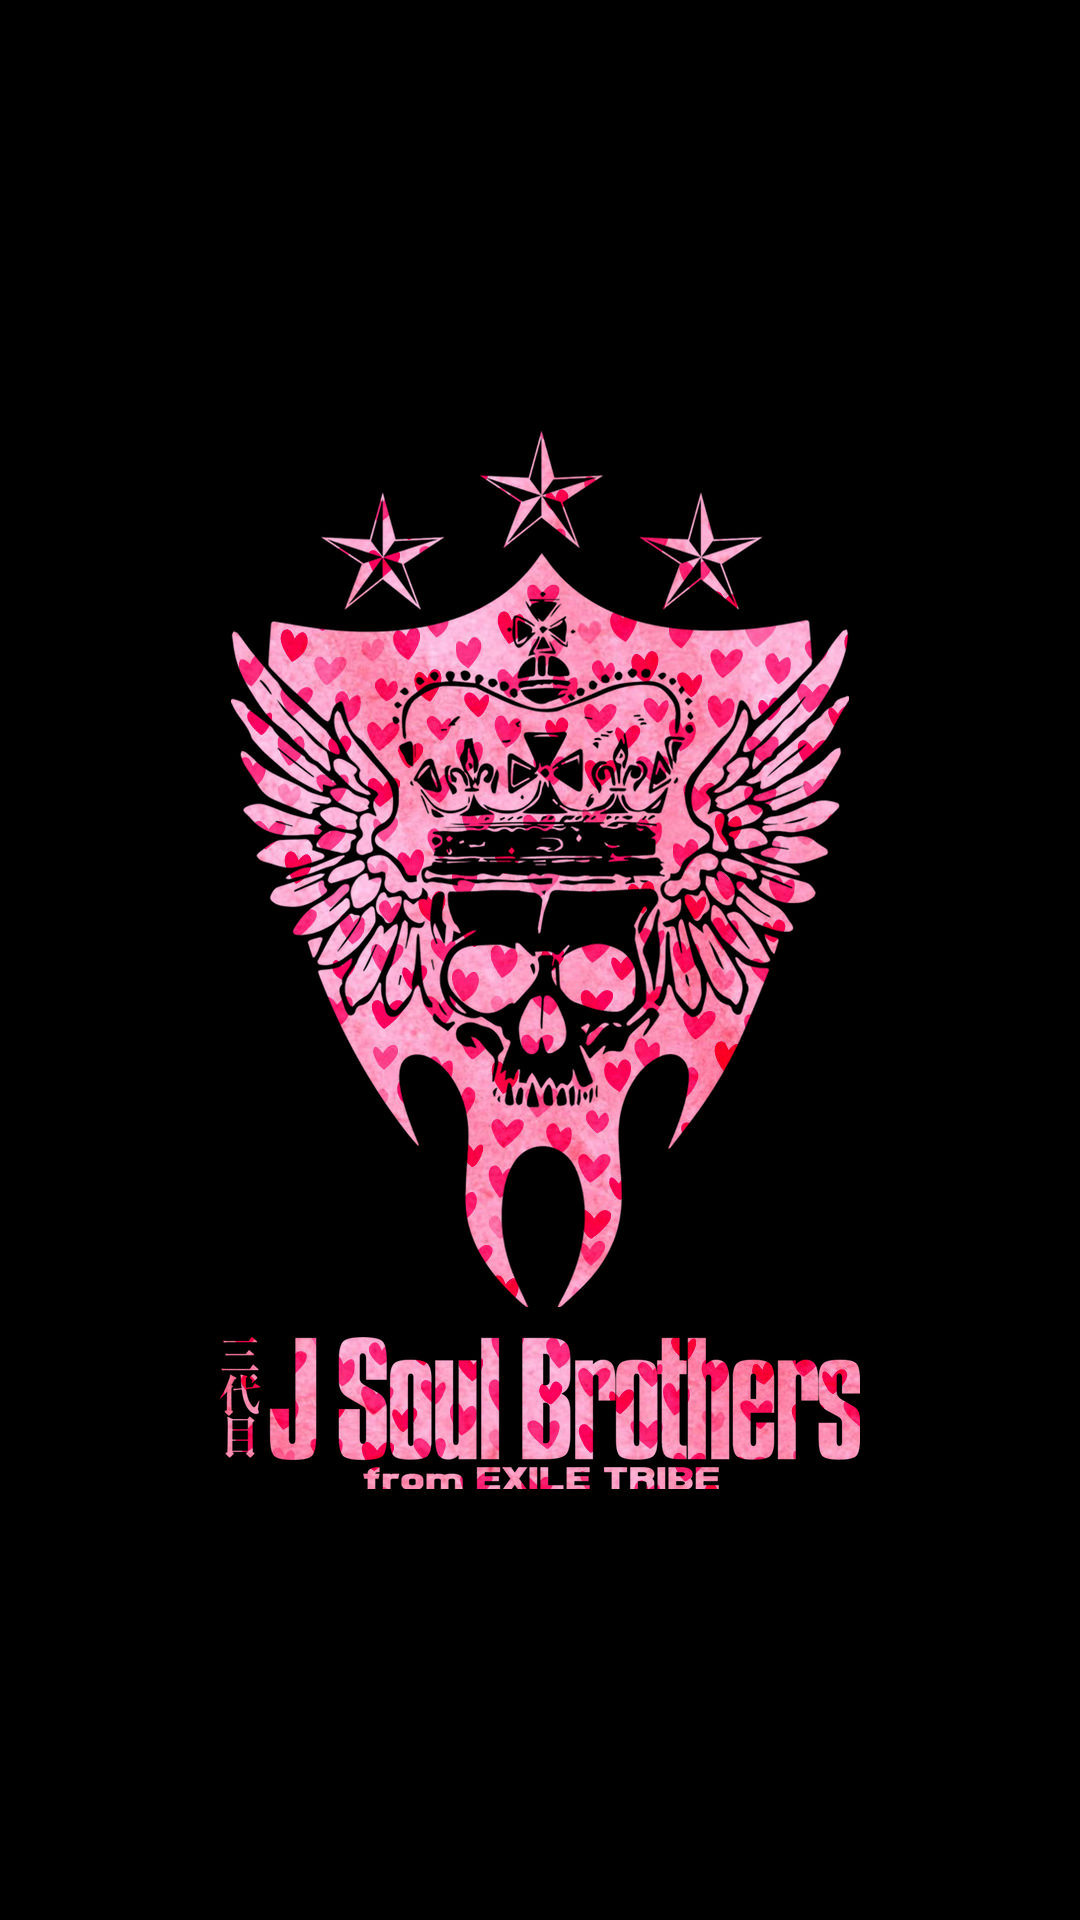 3jsb i23 - 三代目 J SOUL BROTHERSの高画質スマホ壁紙40枚 [iPhone&Androidに対応]